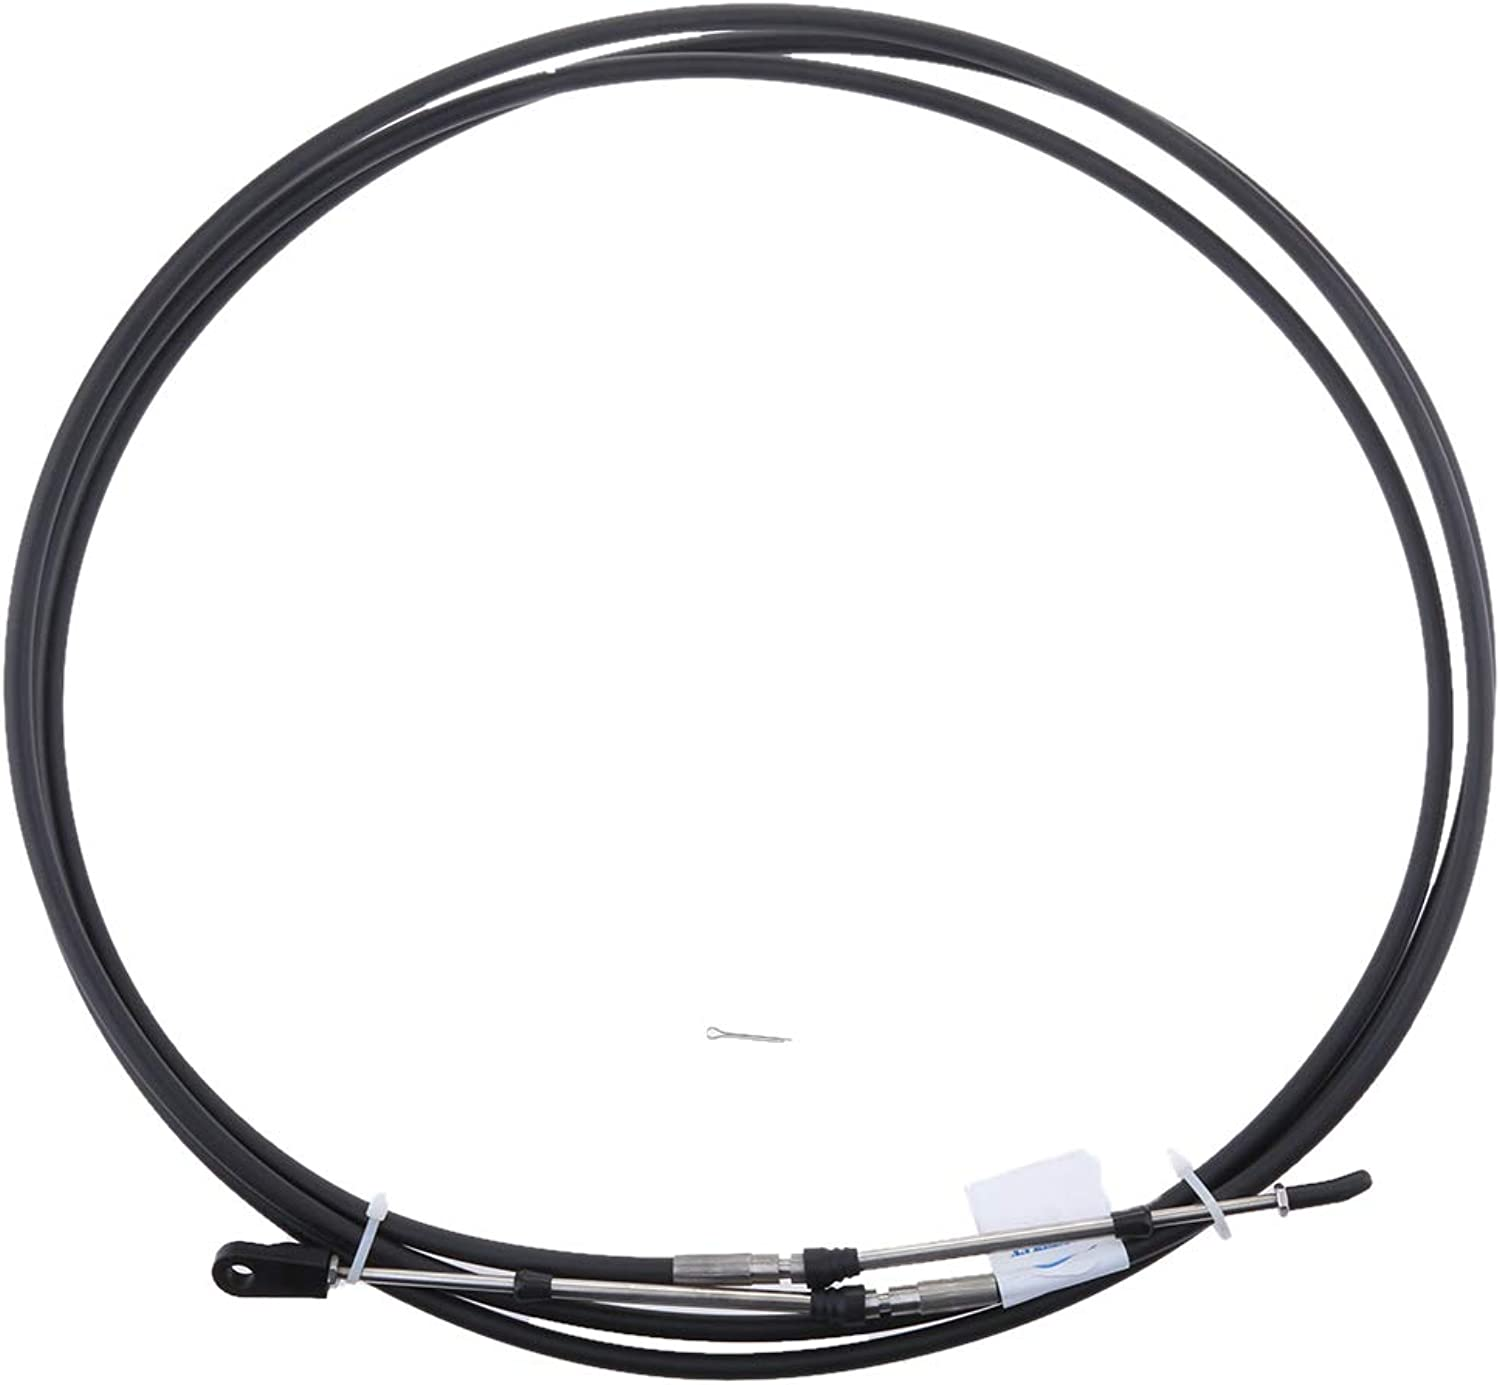 Baosity Marine Boat Outboard Engine Thredtle Control Cable Yamaha Outboard